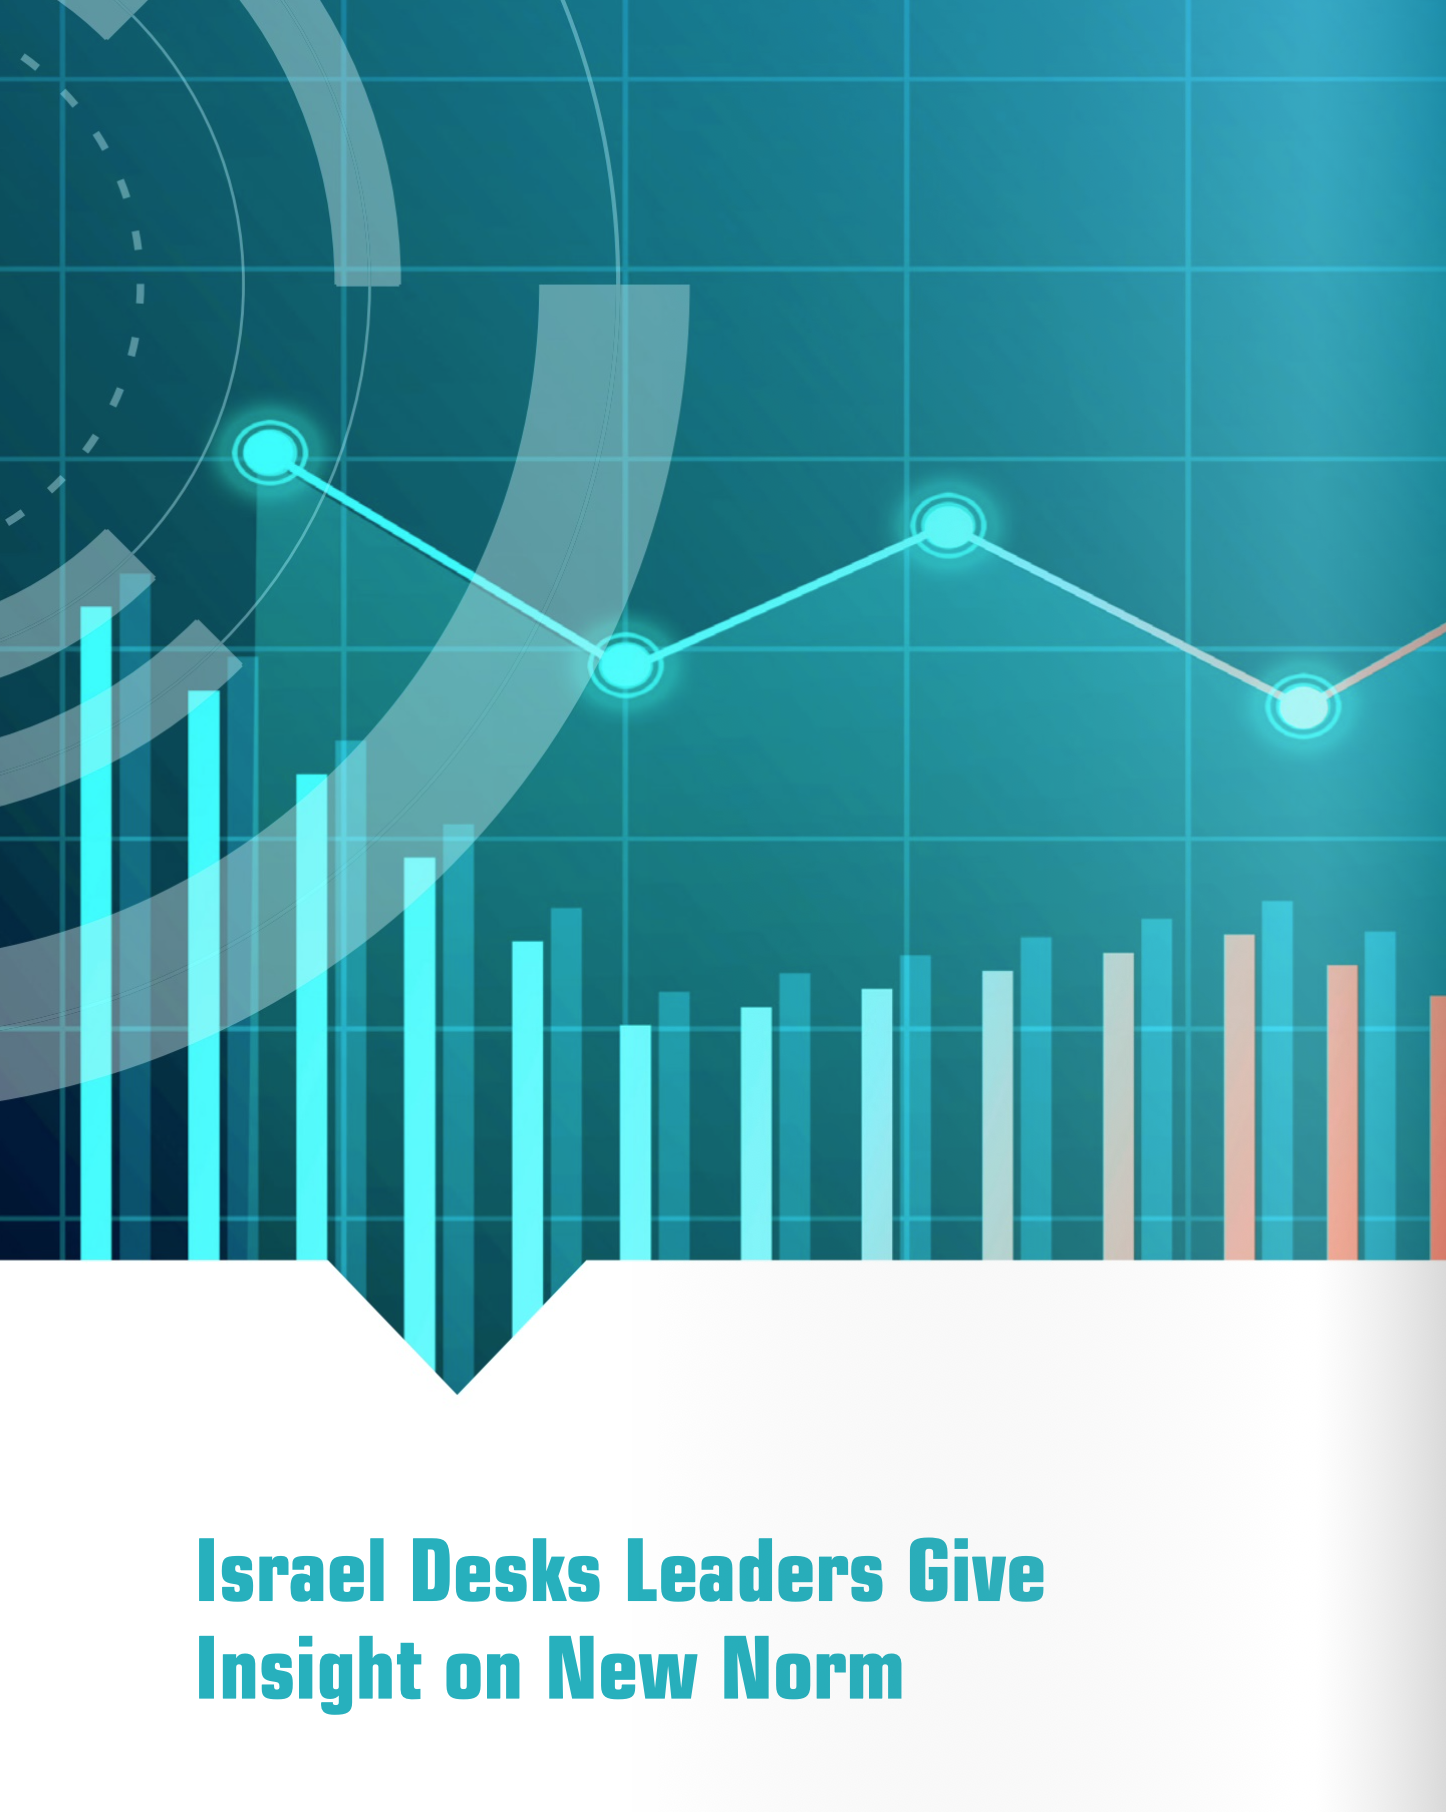 Israel Desks Leaders Give Insight on New Norm